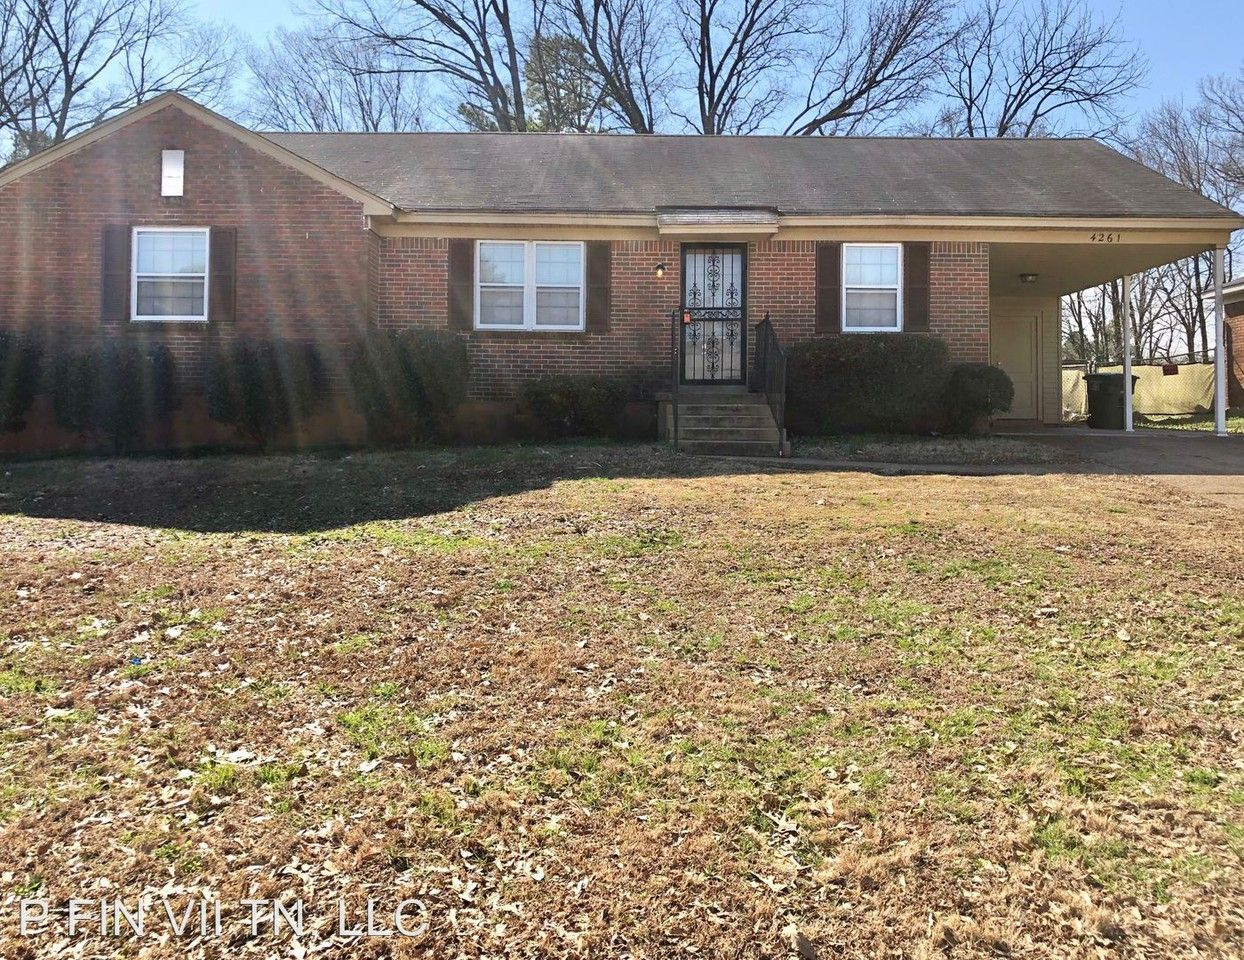 4261 Riche Road, Memphis, TN 38128 3 Bedroom House for ...